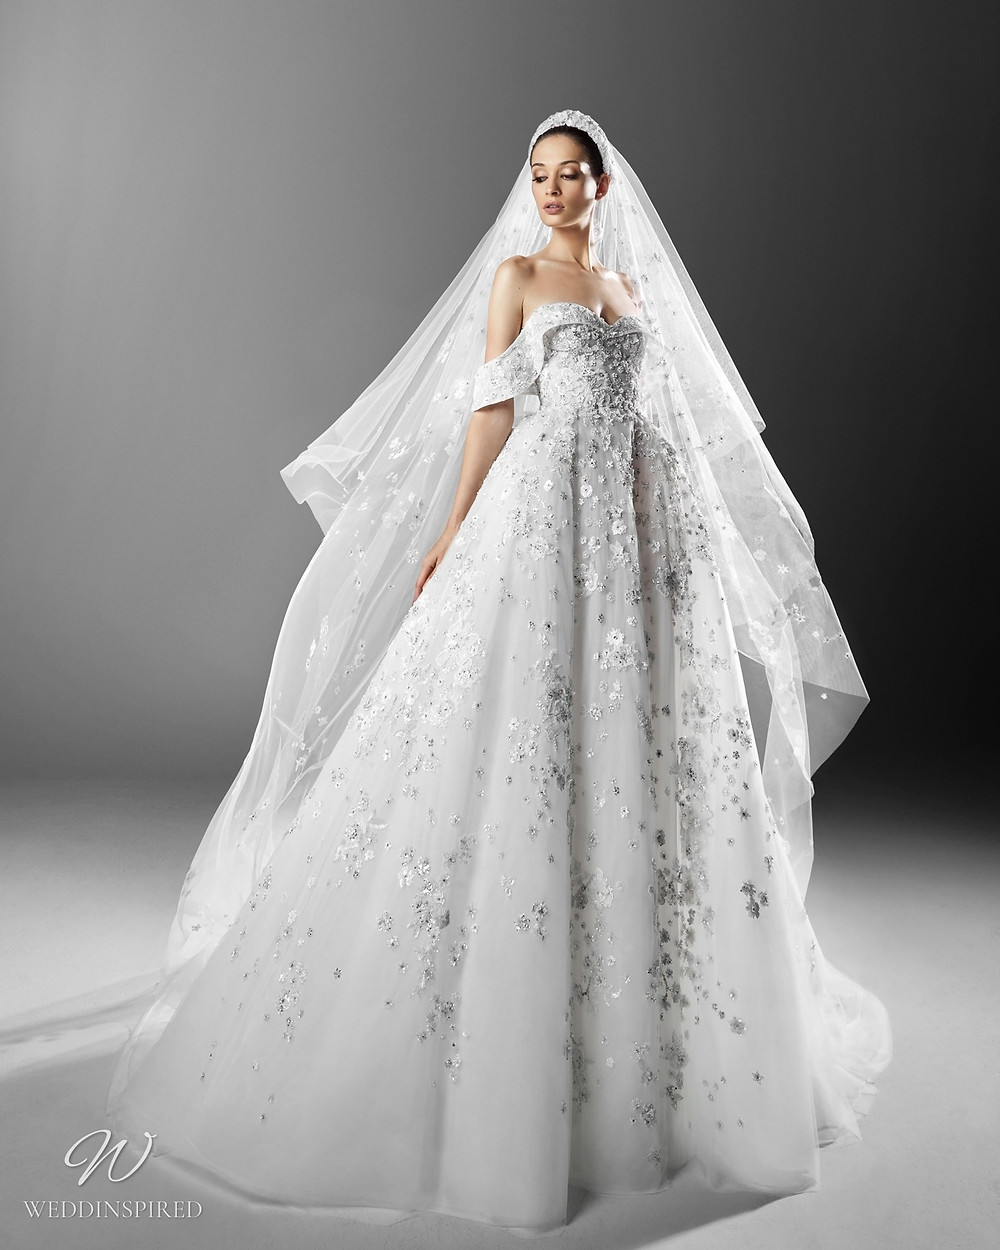 A Zuhair Murad ball gown off the shoulder princess wedding dress with a sweetheart neckline and a veil